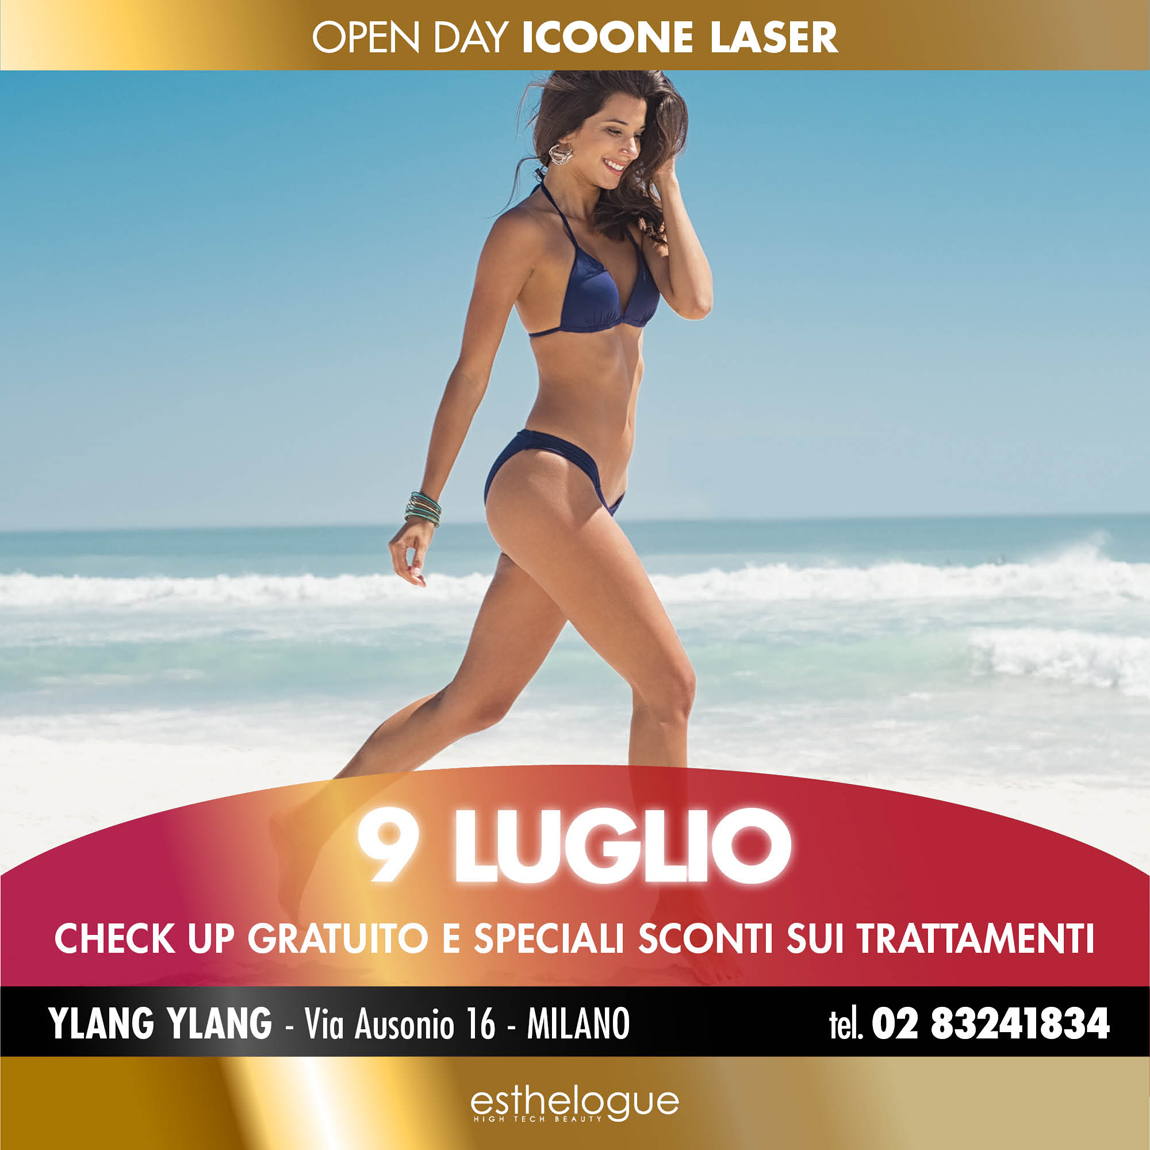 Open Day 9 Luglio Icoone Laser